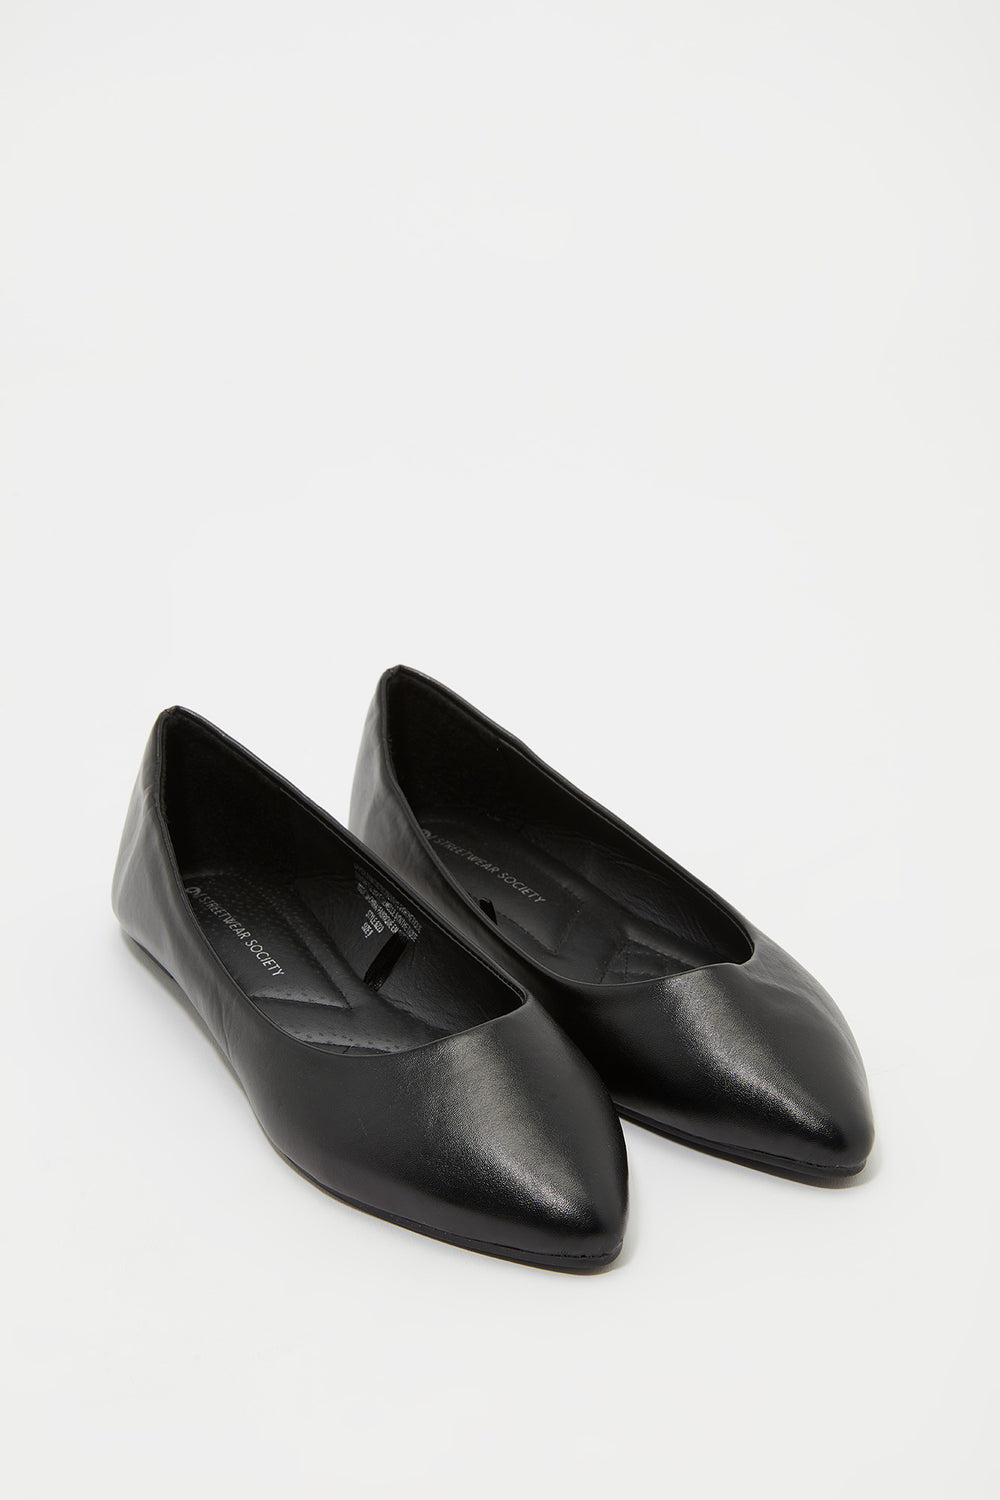 Ballerines pointues Noir de jais